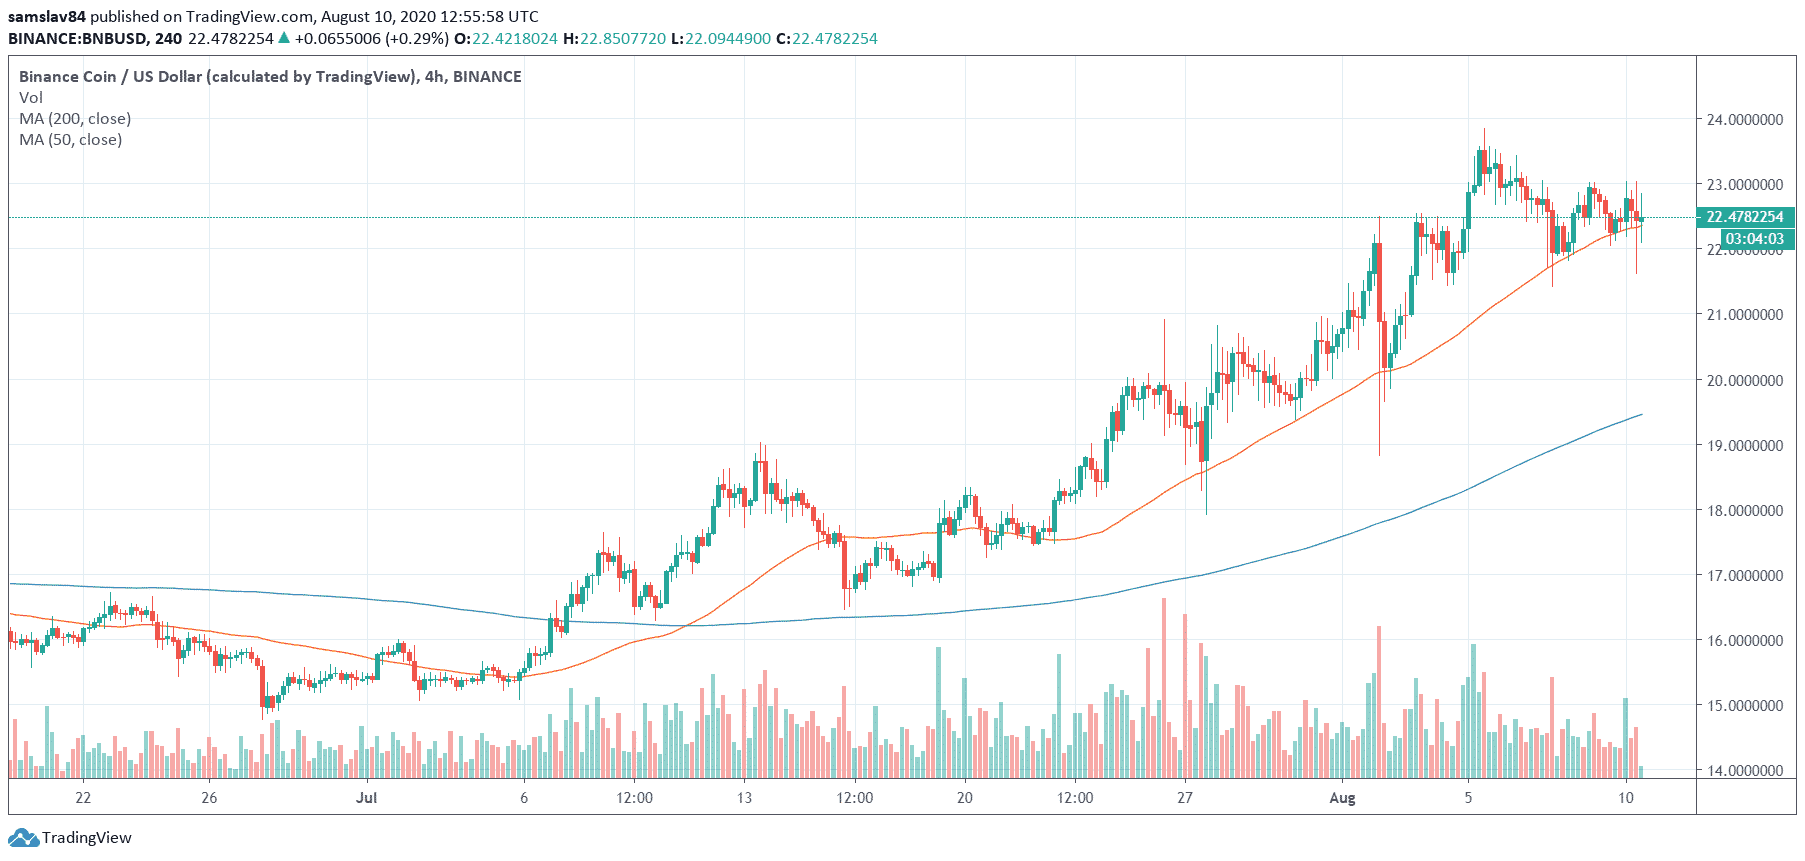 4h BNB/USD - Binance